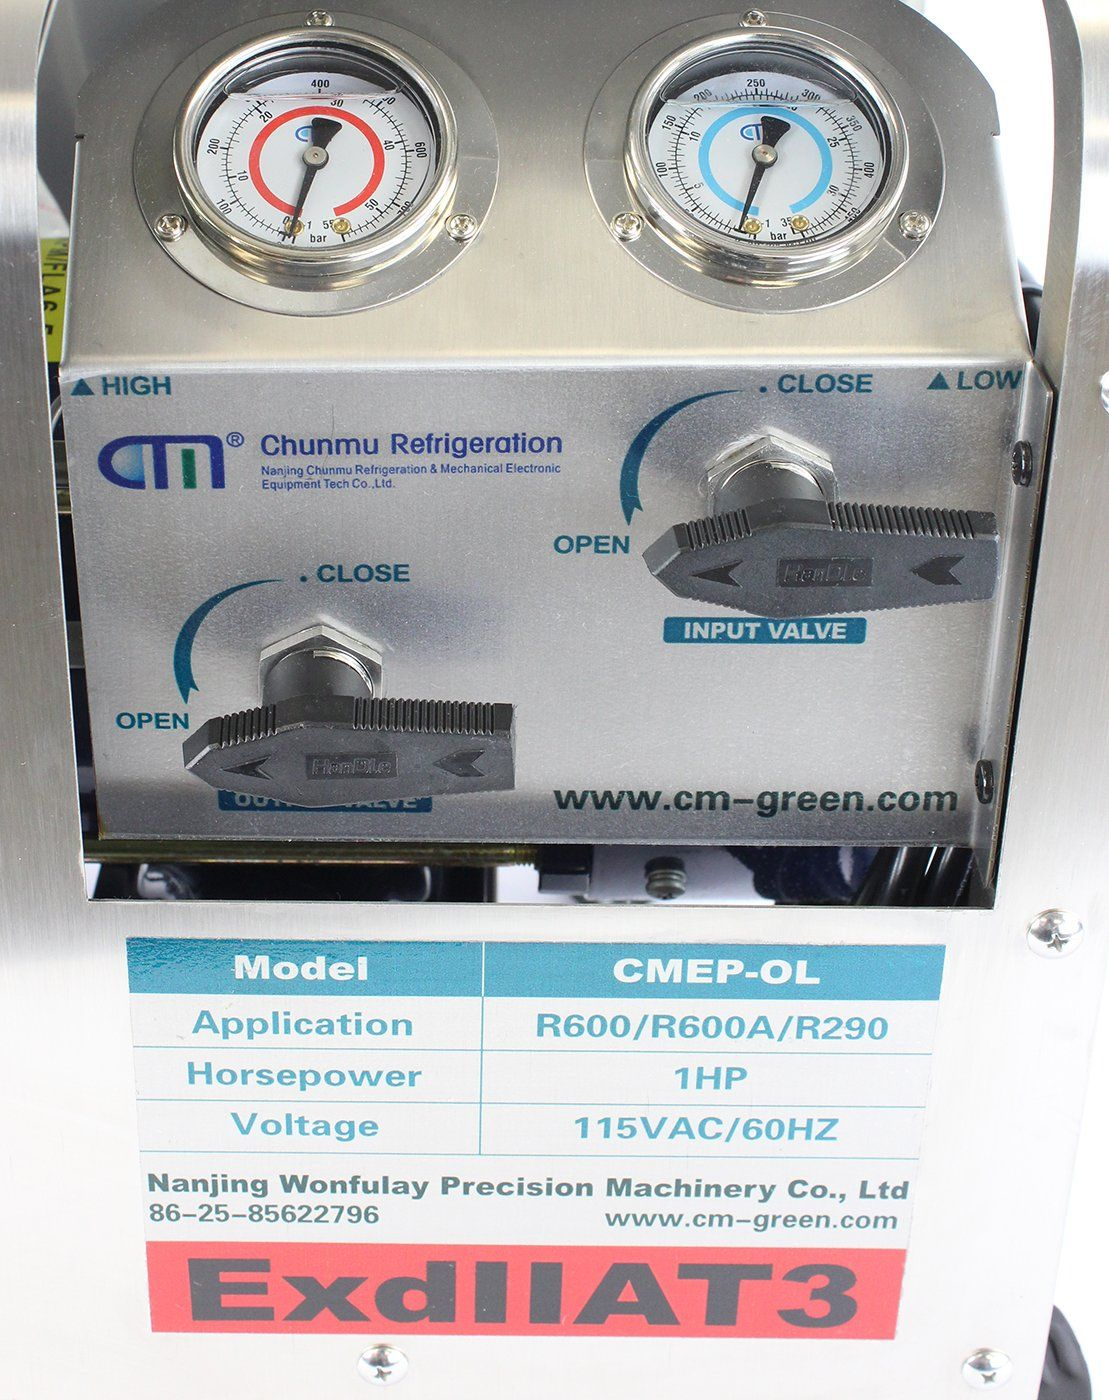 CMEP-OL Gen 2 Oil-less Explosion Proof Recovery Pump Shop All Categories CMEP